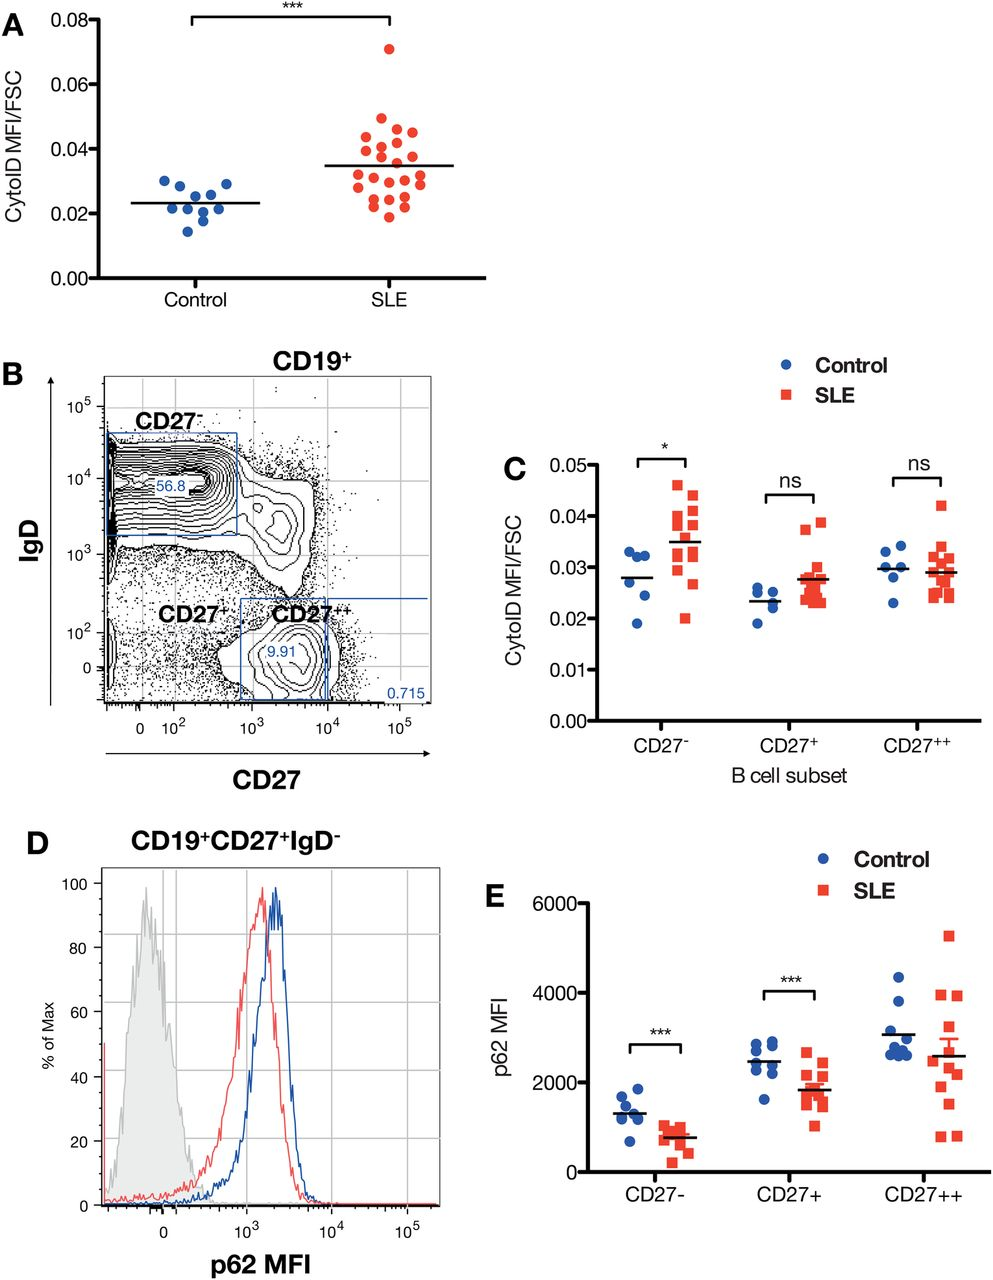 Autophagy is activated in systemic lupus erythematosus and